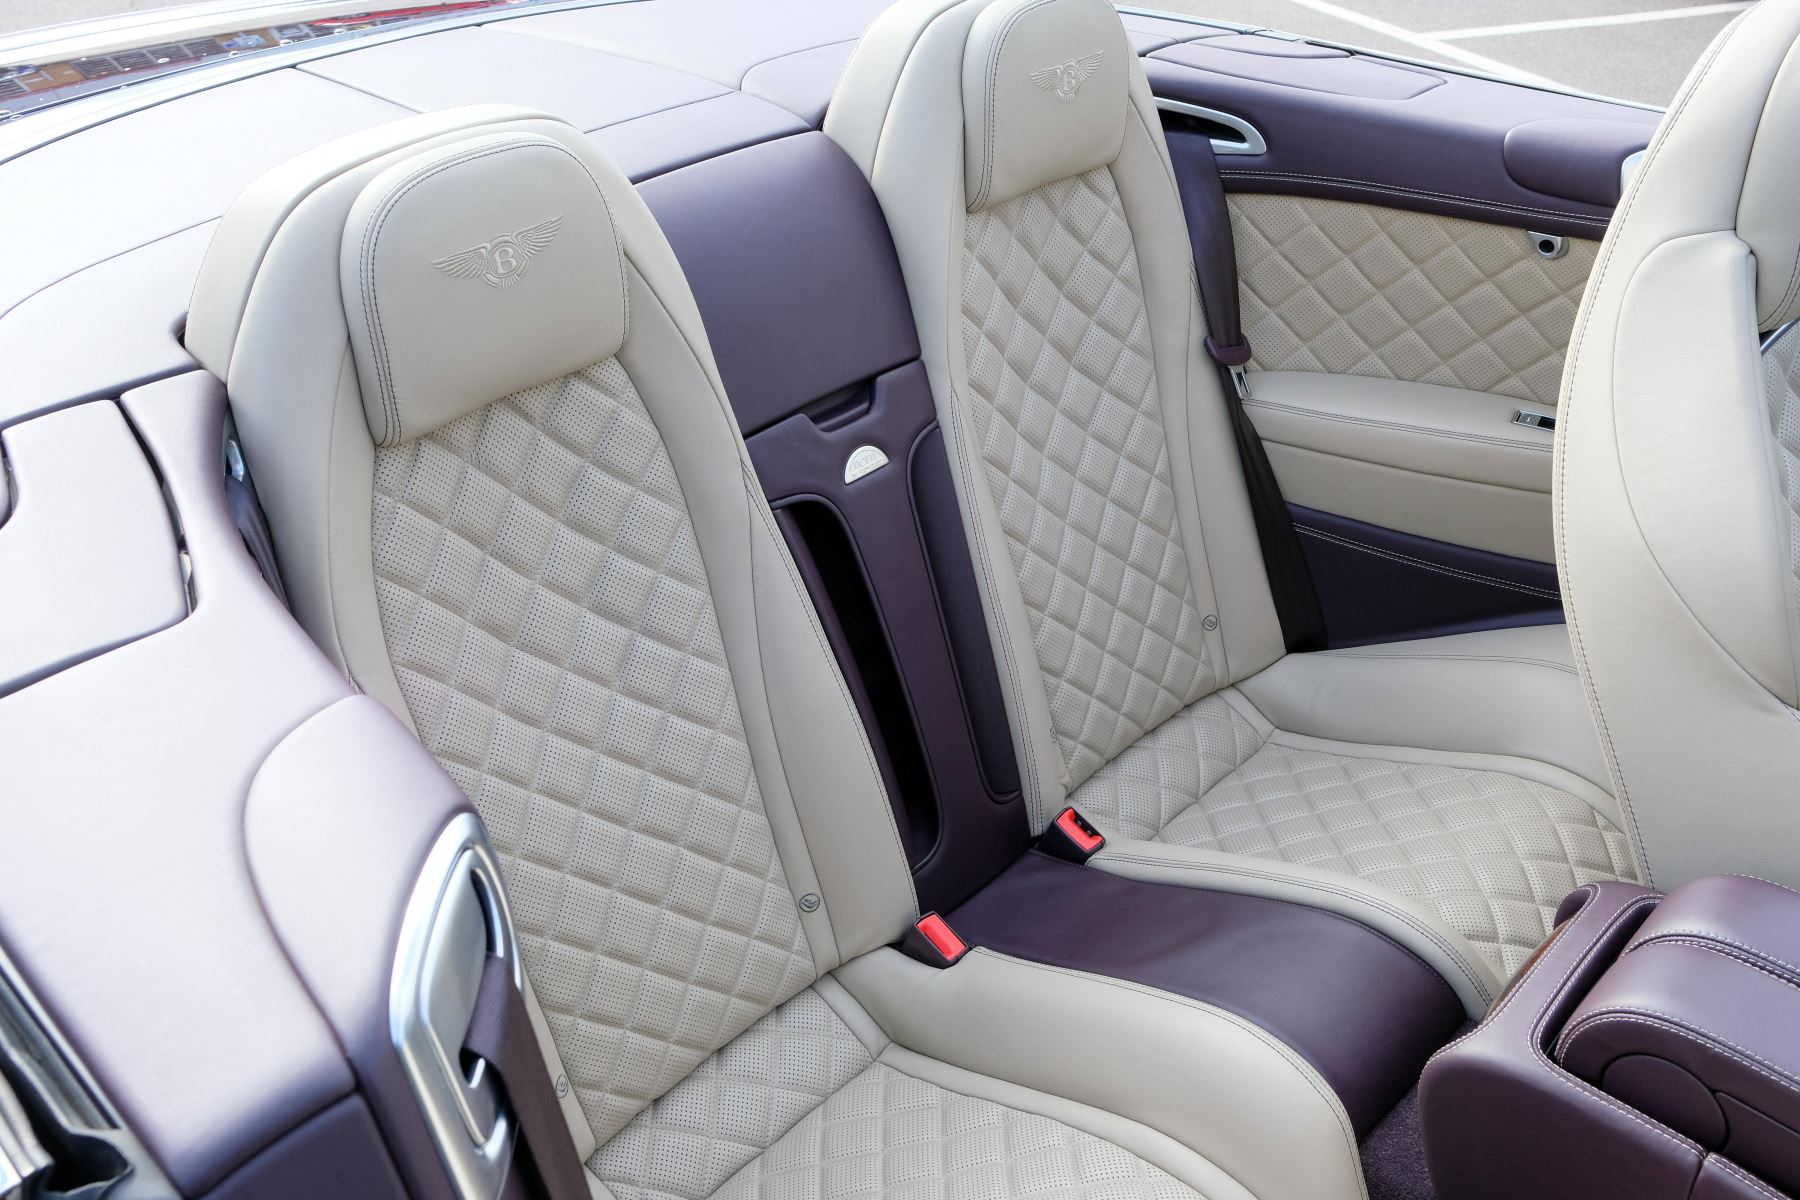 Bentley Continental GTC 4.0 V8 S Mulliner Driving Spec - Premier and All Seasons Specification image 13